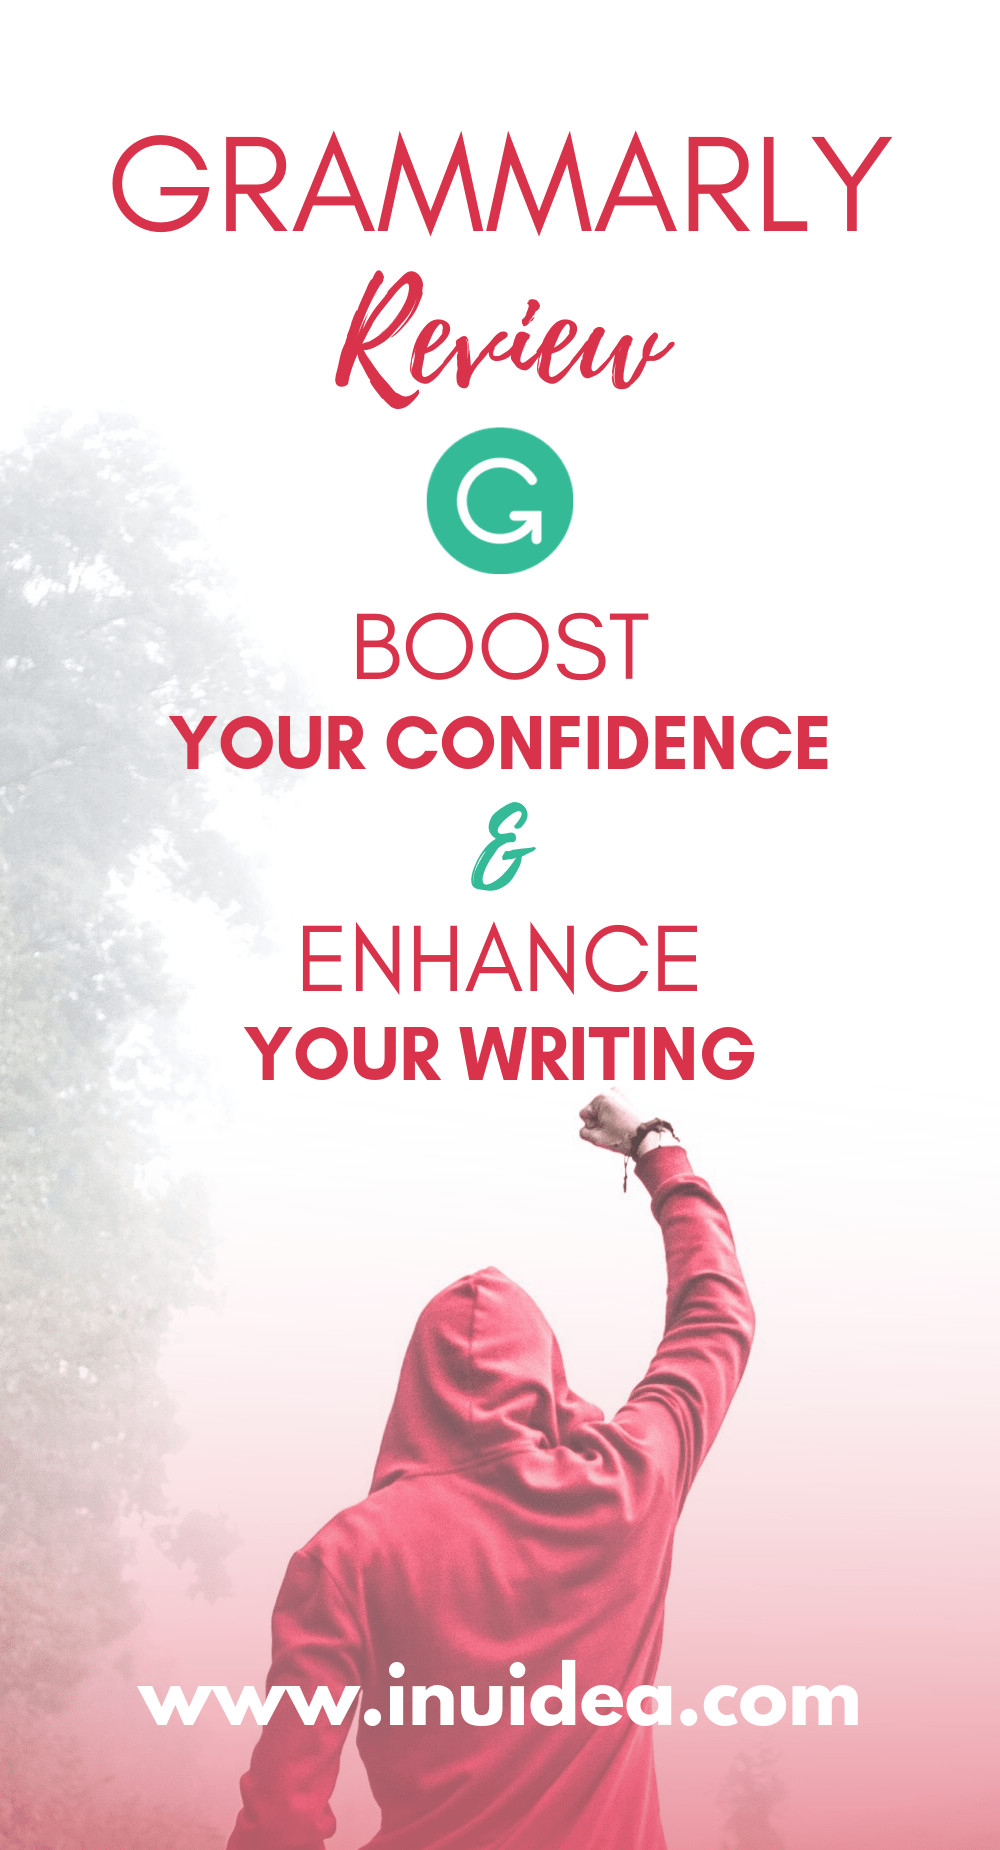 With 5 Year Warranty Grammarly Proofreading Software